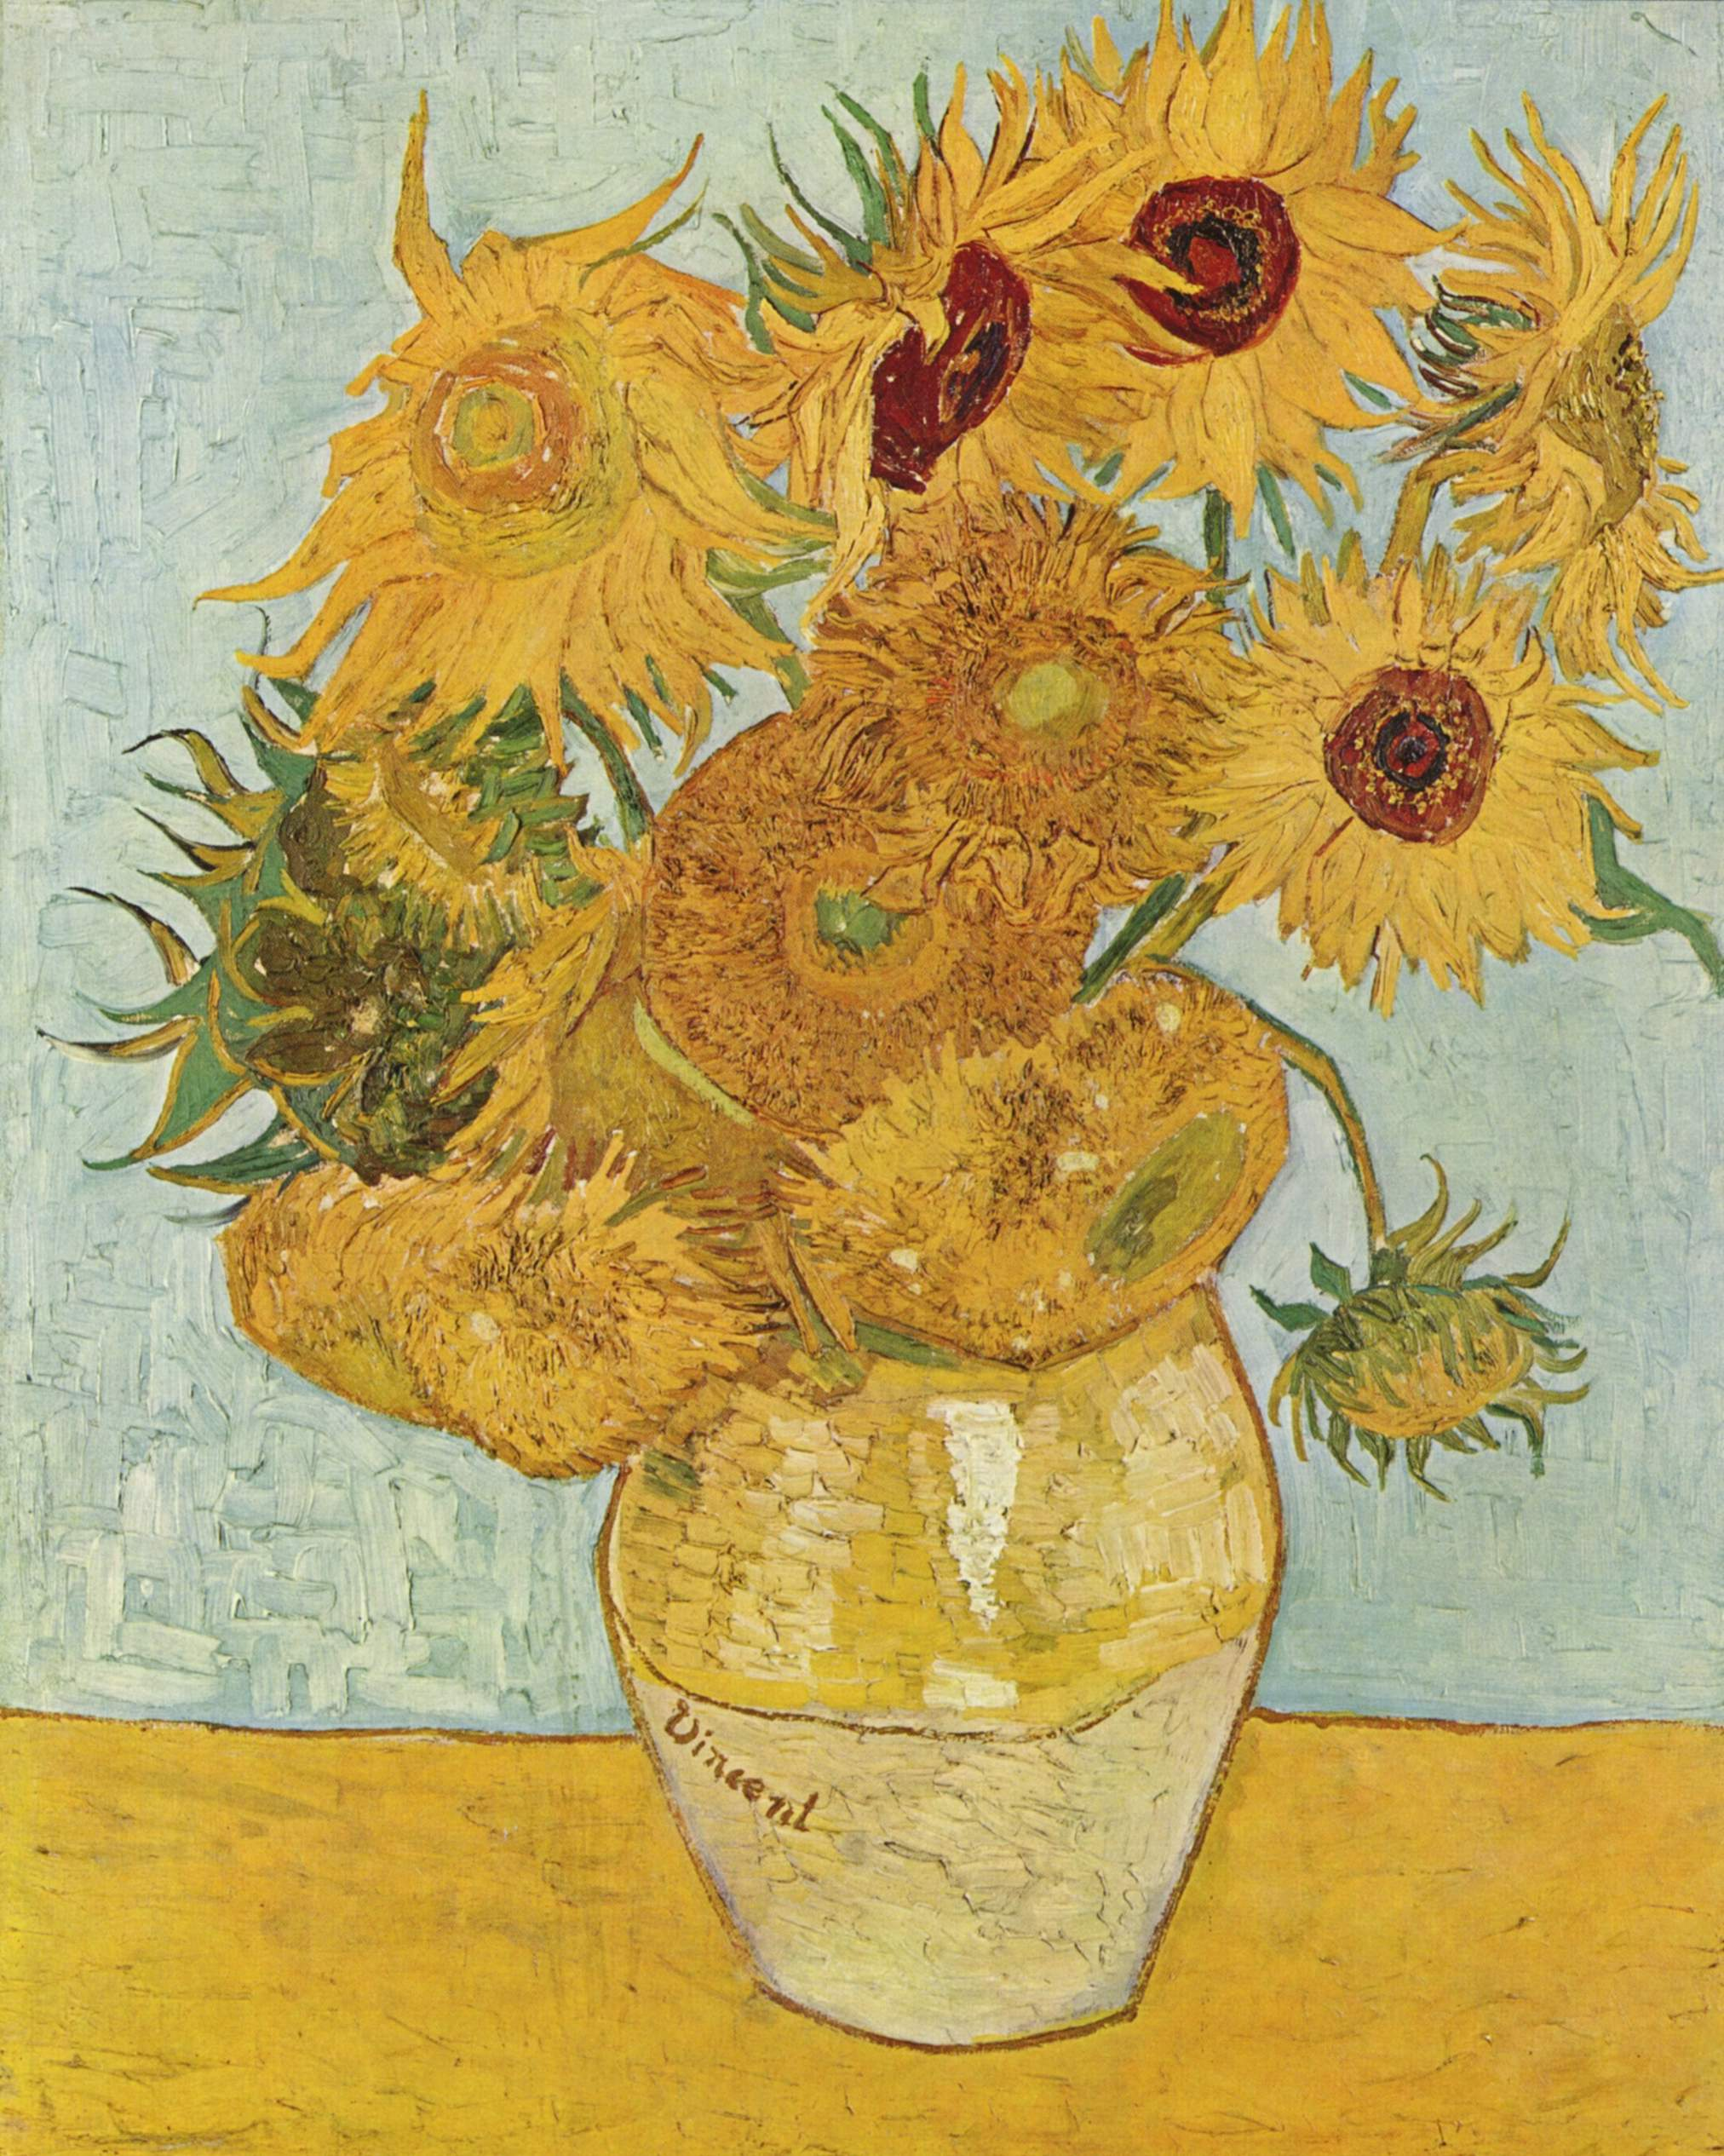 Vincent Van Gogh - Sunflowers in Vase - Wikipedia